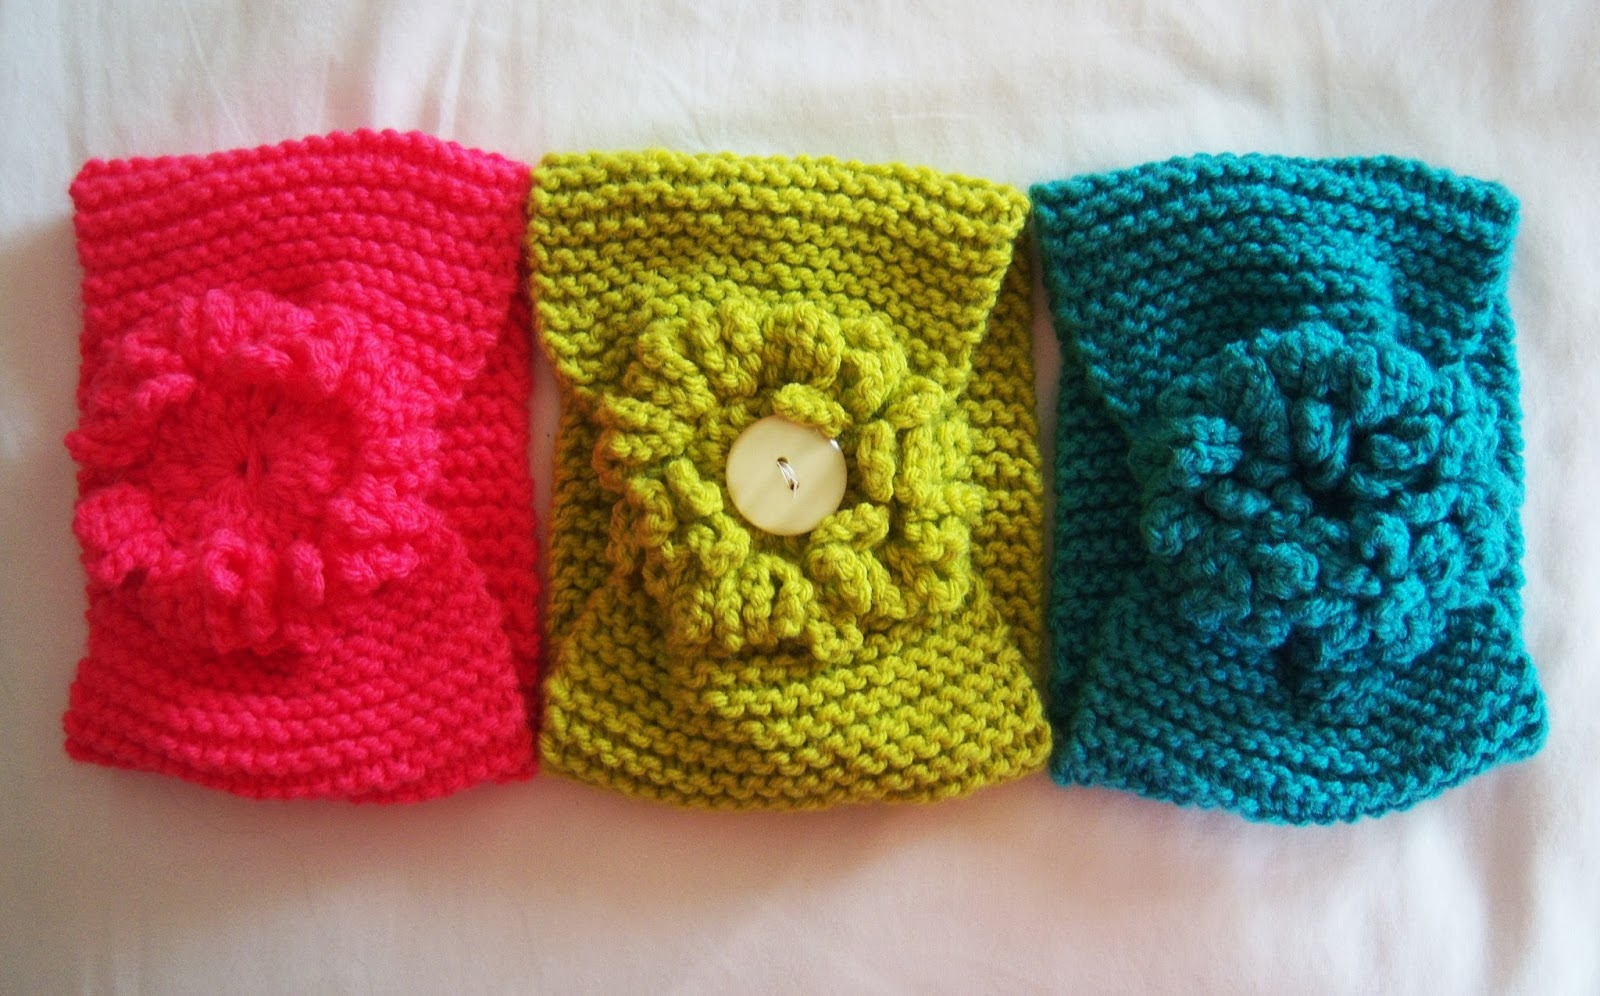 Knitting Patterns For Head Wraps : Shoregirls Creations: Knitted Head Wrap